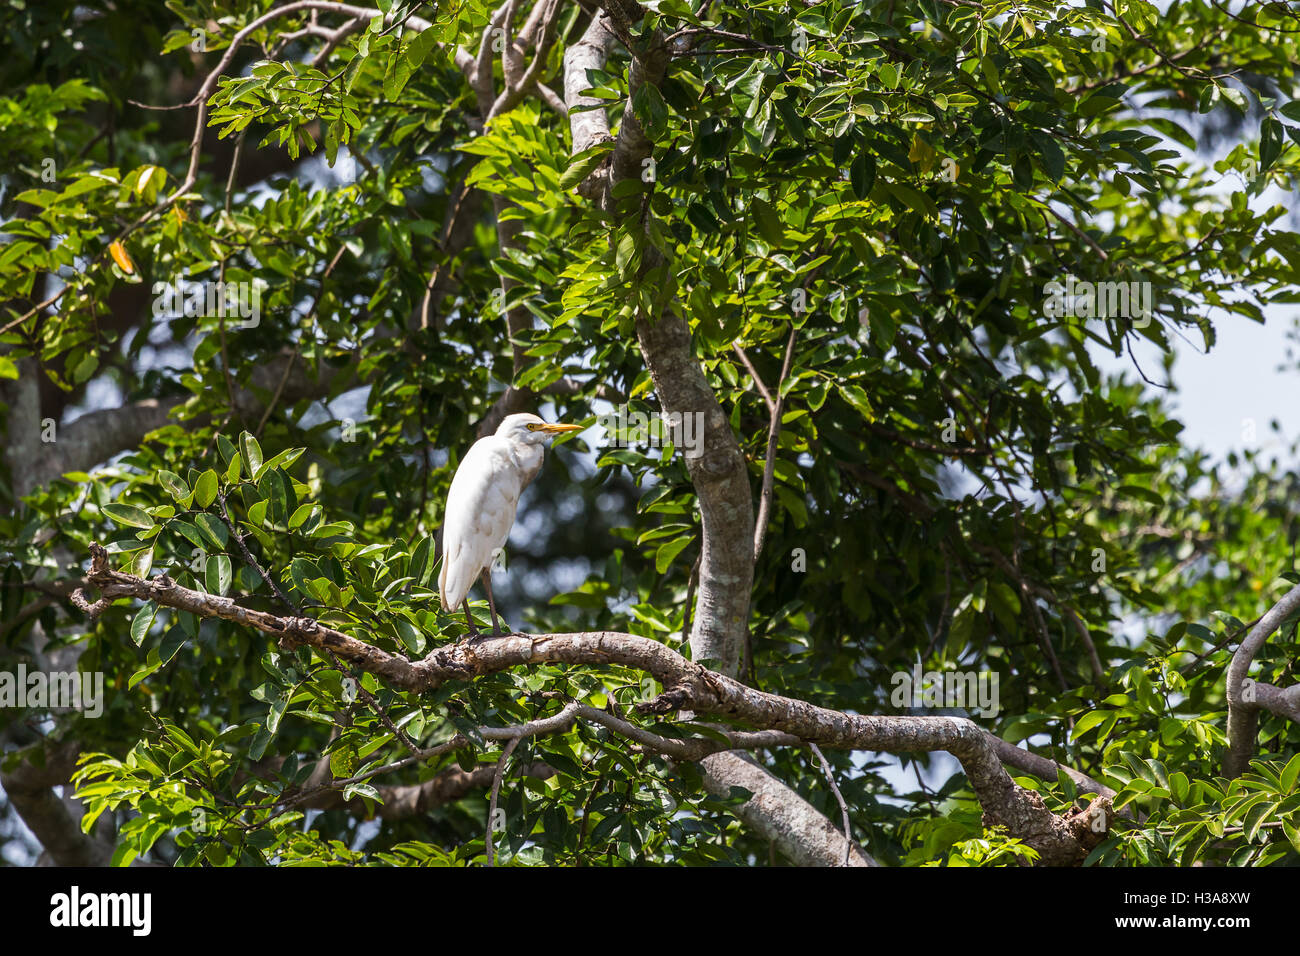 A Great egret high up in the tree tops of the Palo Verde National Park in Costa Rica. - Stock Image